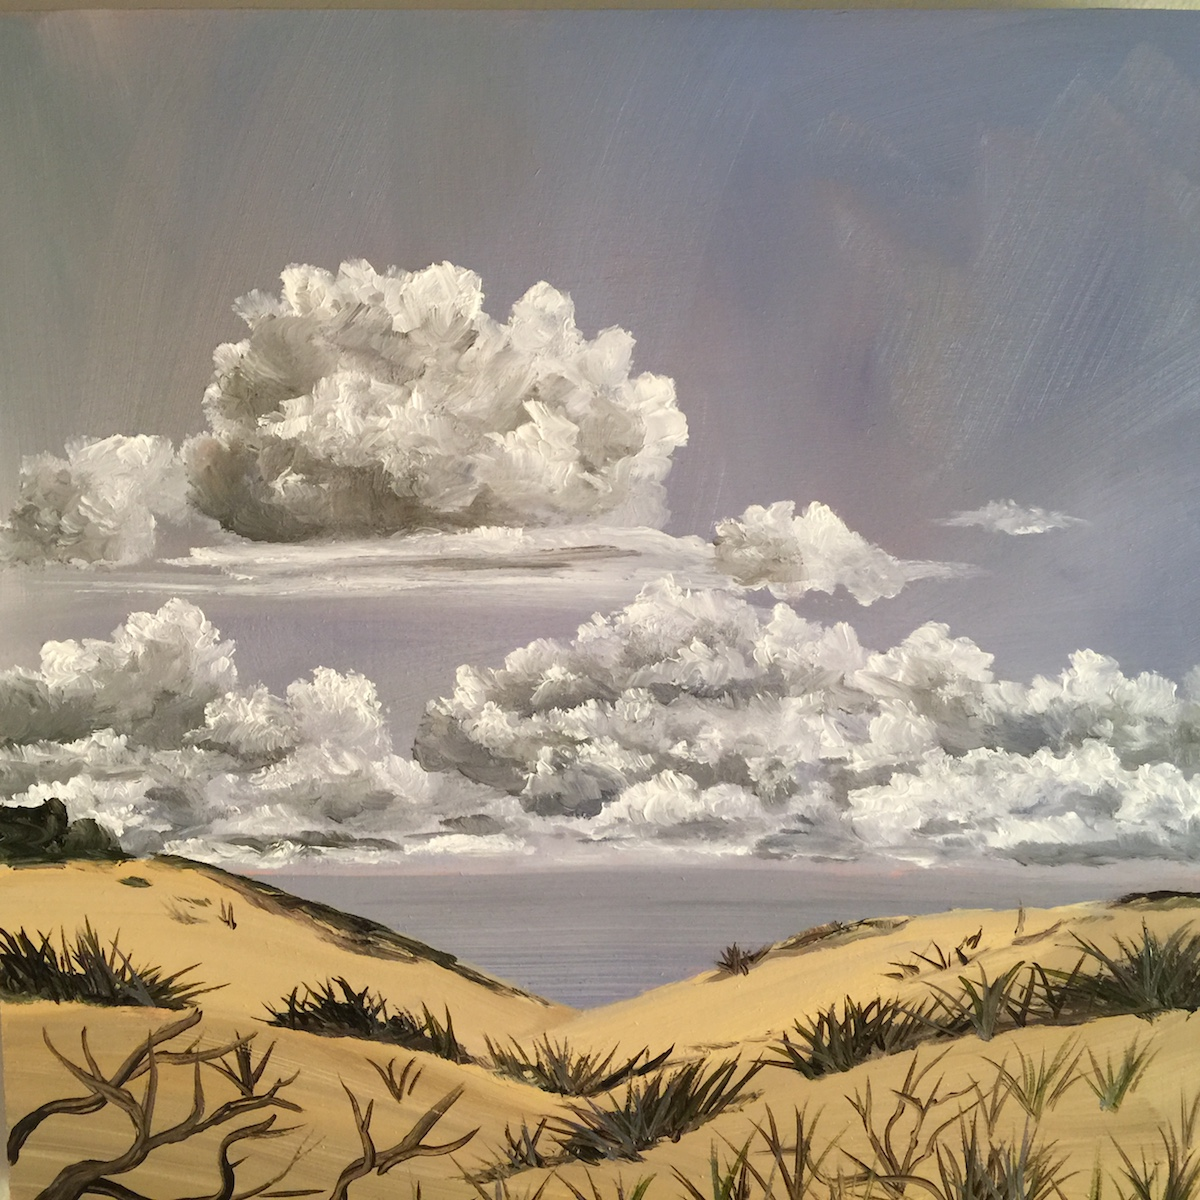 Billowy Sky at Sleeping Bear Dunes National Lakeshore - Painting by Stephanie Schlatter